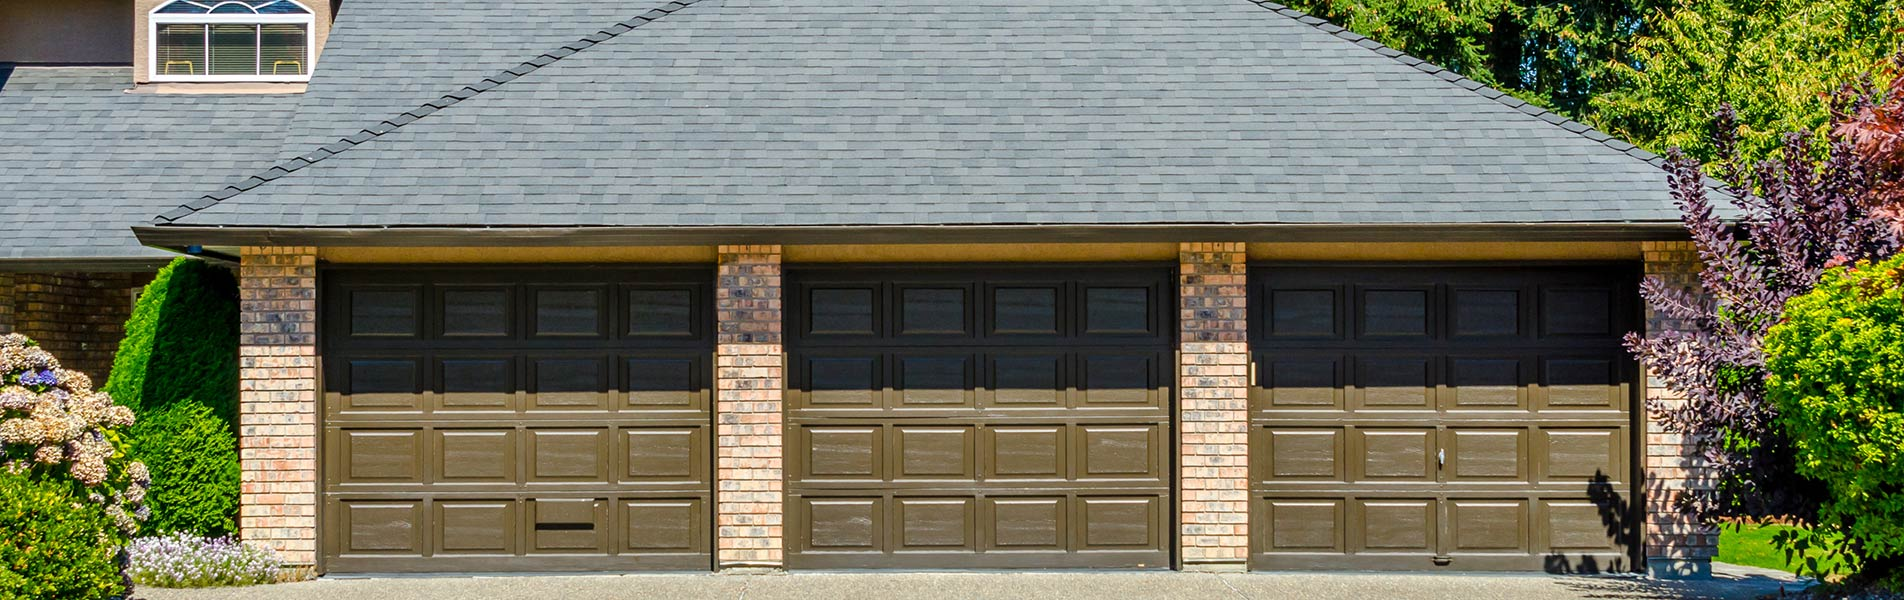 Two Guys Garage Doors Portland, OR 503-683-7485